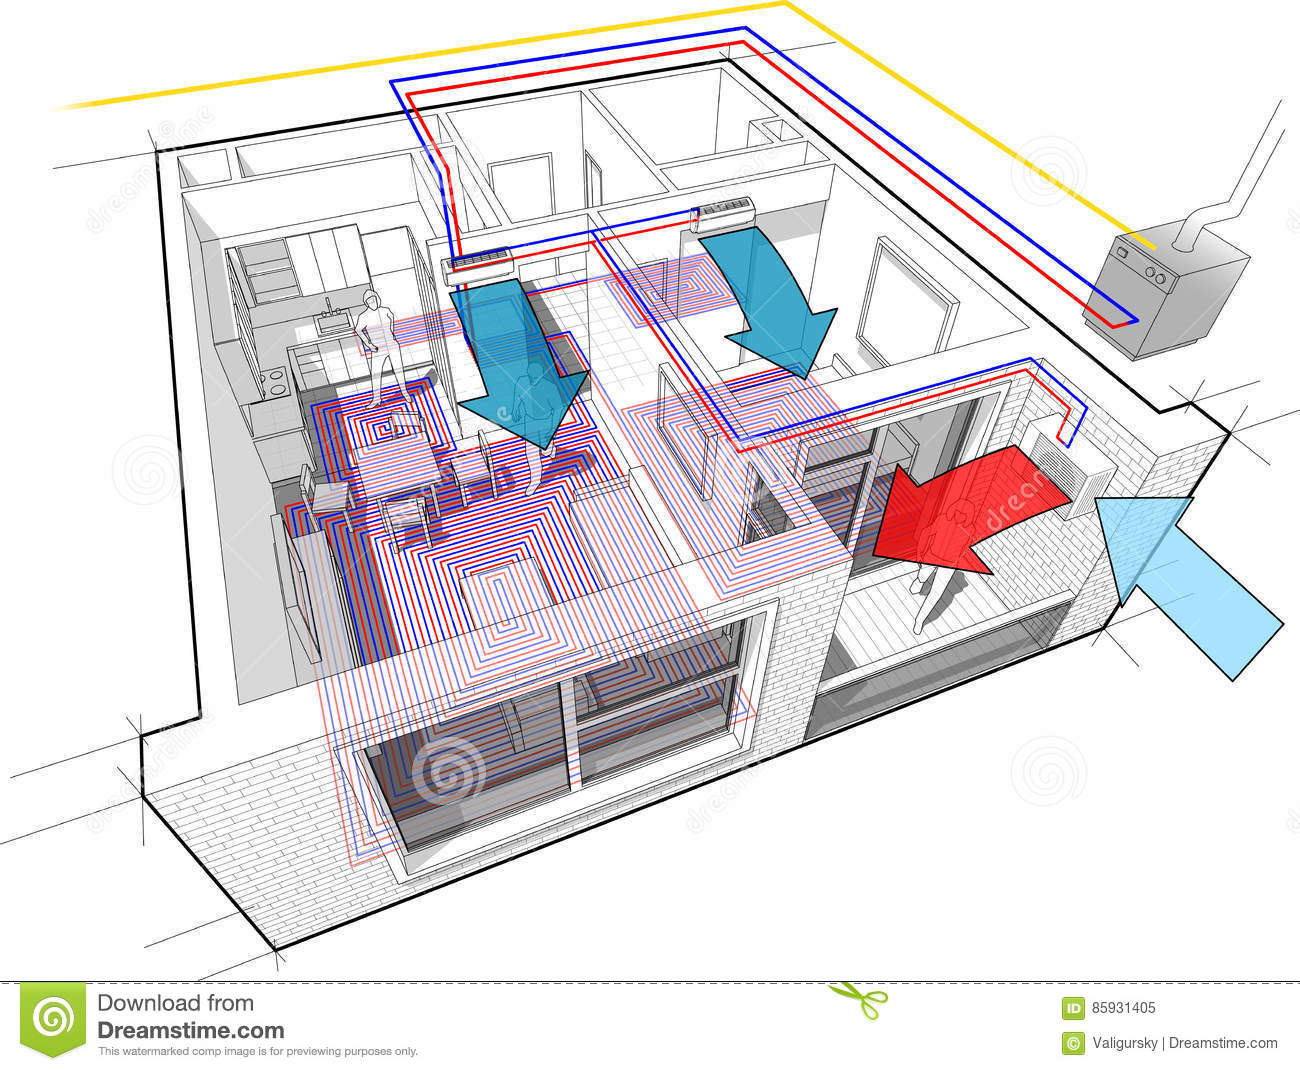 hight resolution of apartment diagram with underfloor heating and gas water boiler and air conditioning